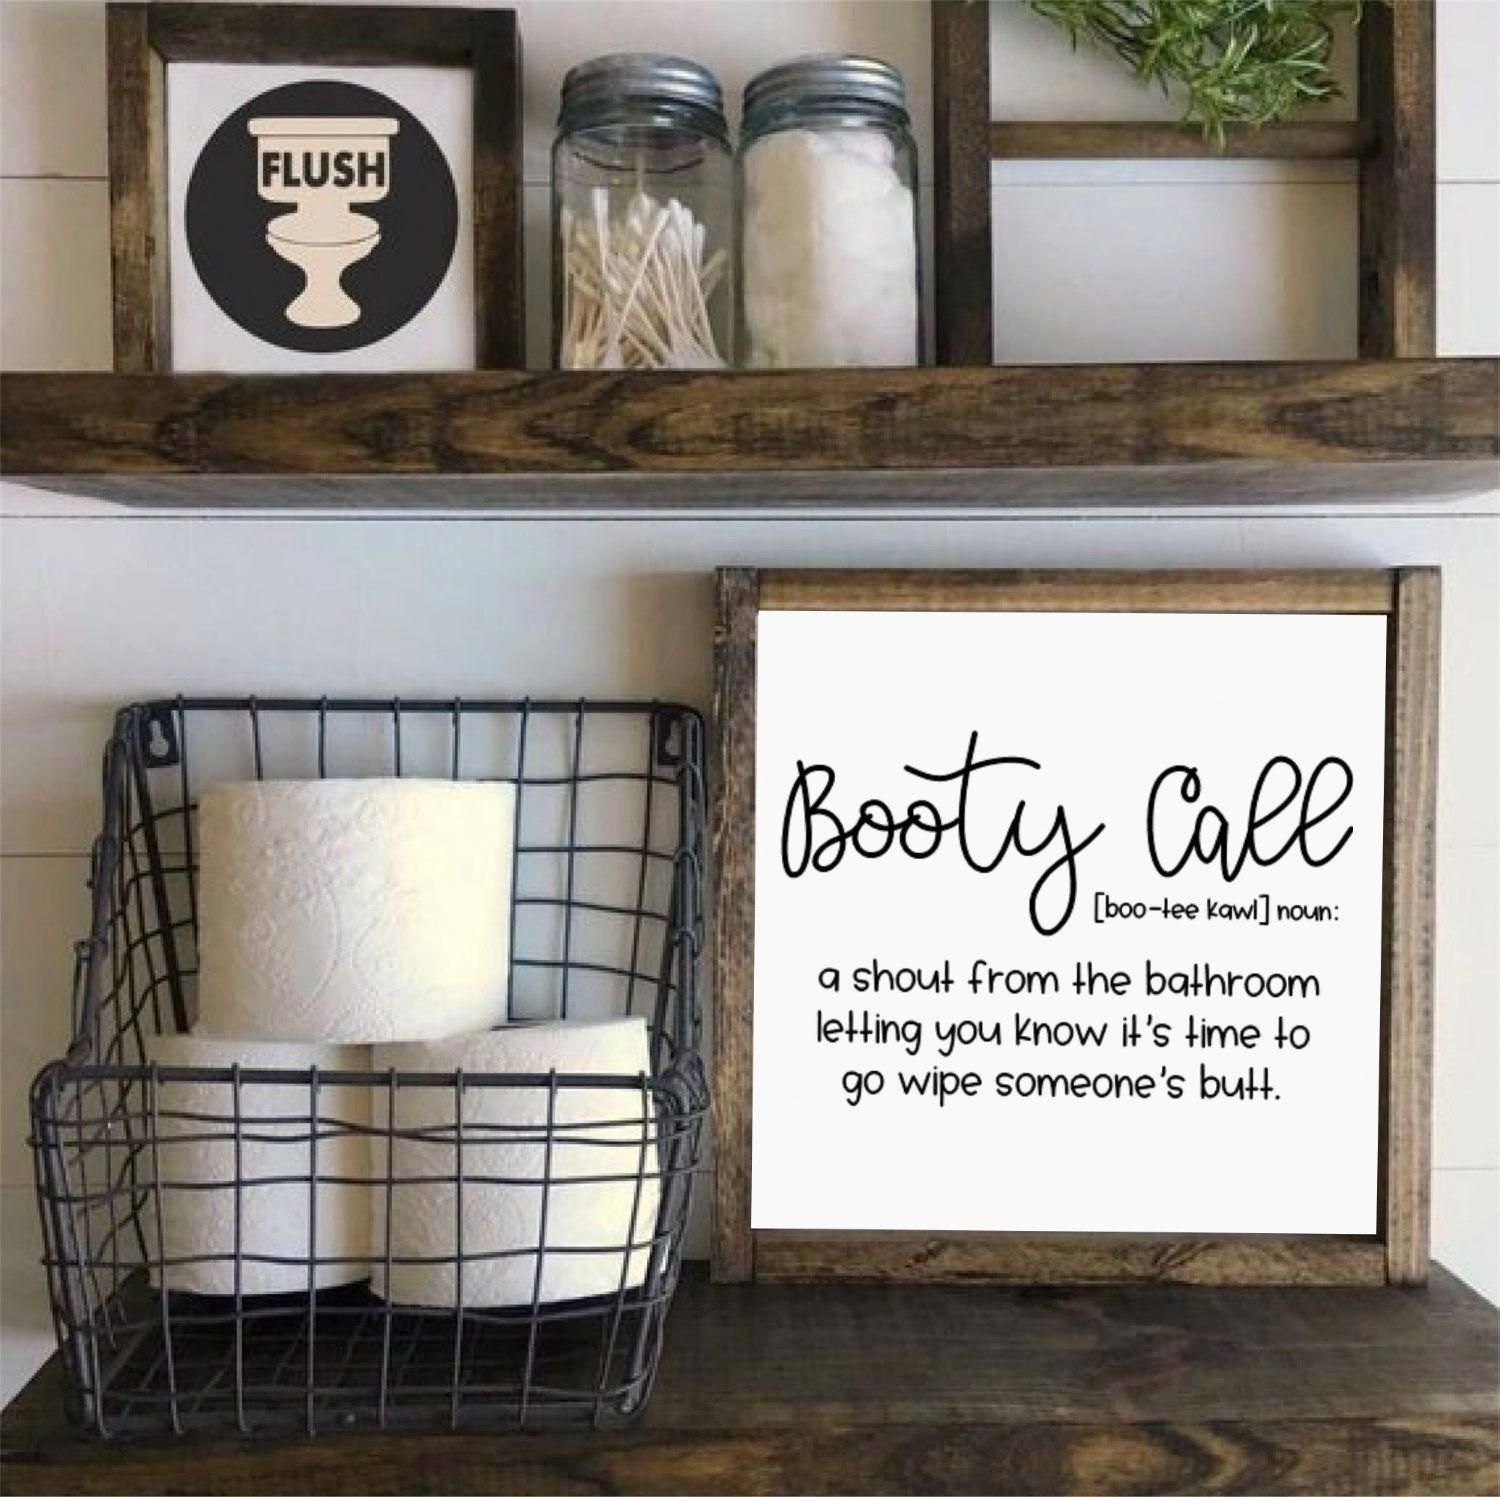 Booty Call Funny Bathroom SignRustic Decor Adult | Etsy